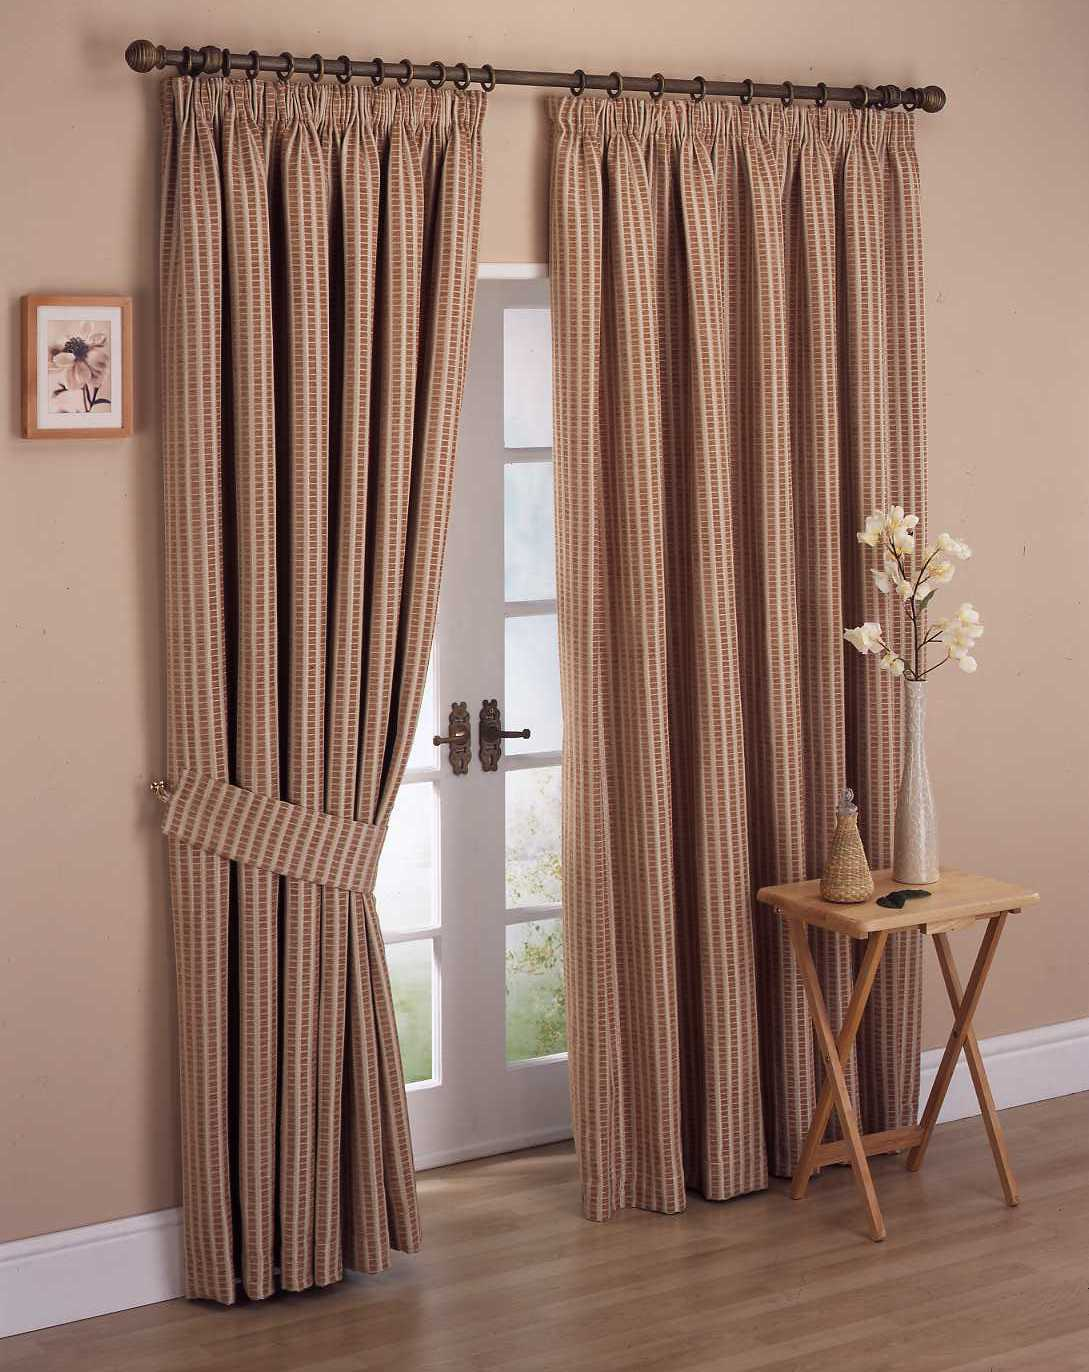 top catalog of classic curtains designs 2013. Black Bedroom Furniture Sets. Home Design Ideas